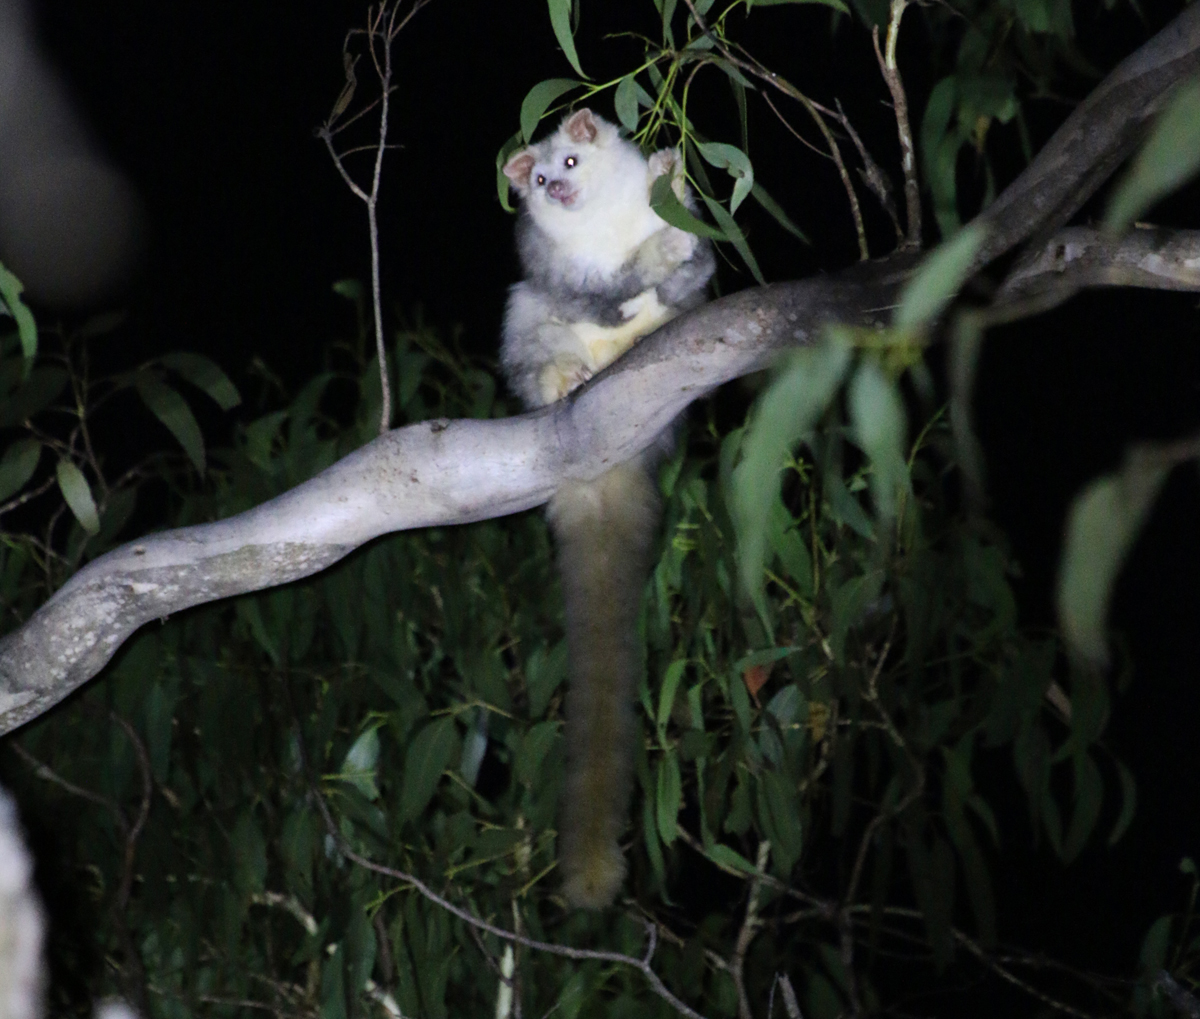 White greater glider